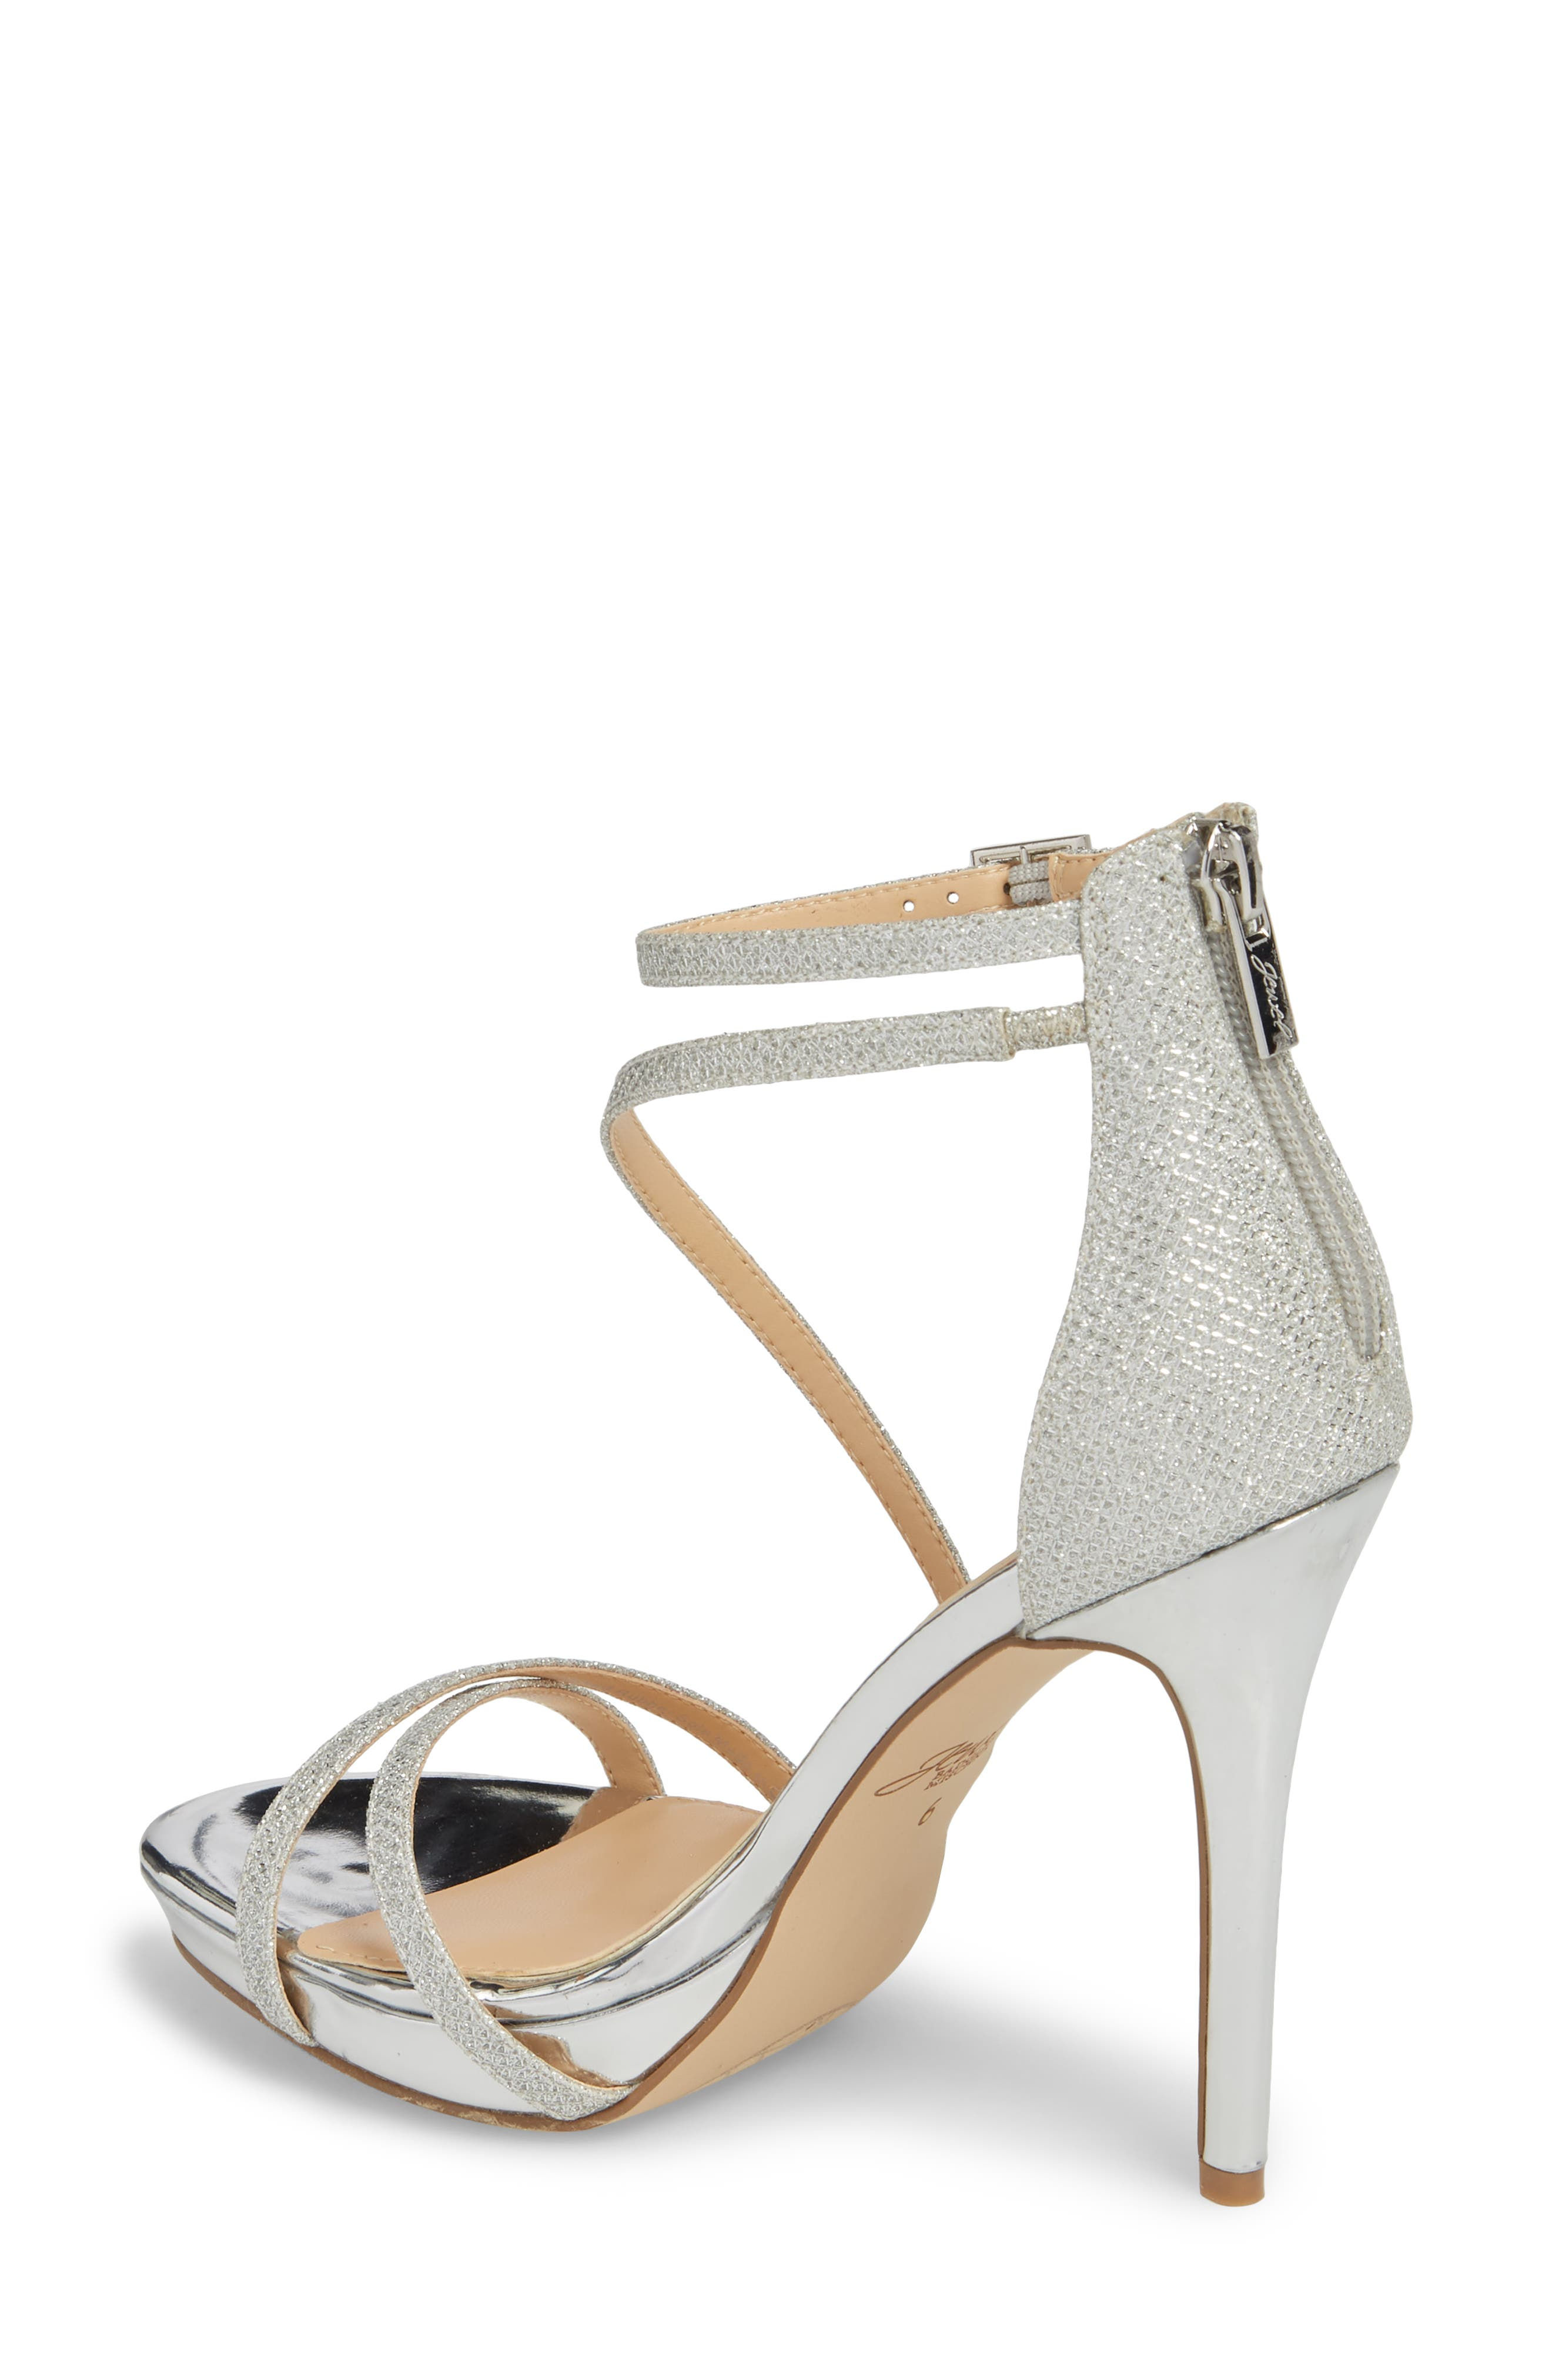 Galen Strappy Platform Sandal,                             Alternate thumbnail 2, color,                             SILVER GLITTER FABRIC